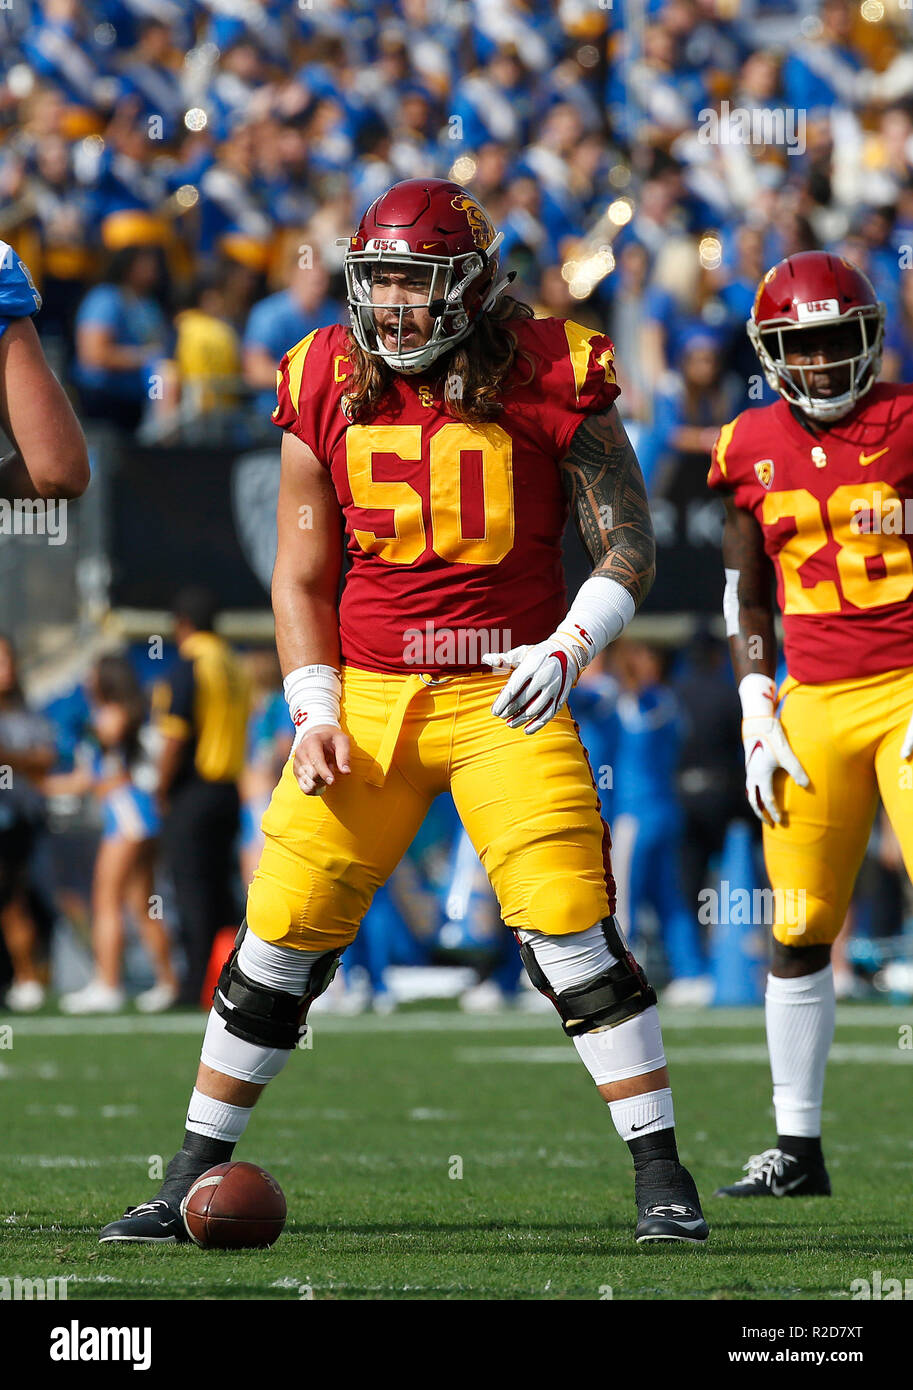 November 17, 2018 USC Trojans center Toa Lobendahn #50 in action during the football game between the USC Trojans and the UCLA Bruins at the Rose Bowl in Pasadena, California. Charles Baus/CSM - Stock Image